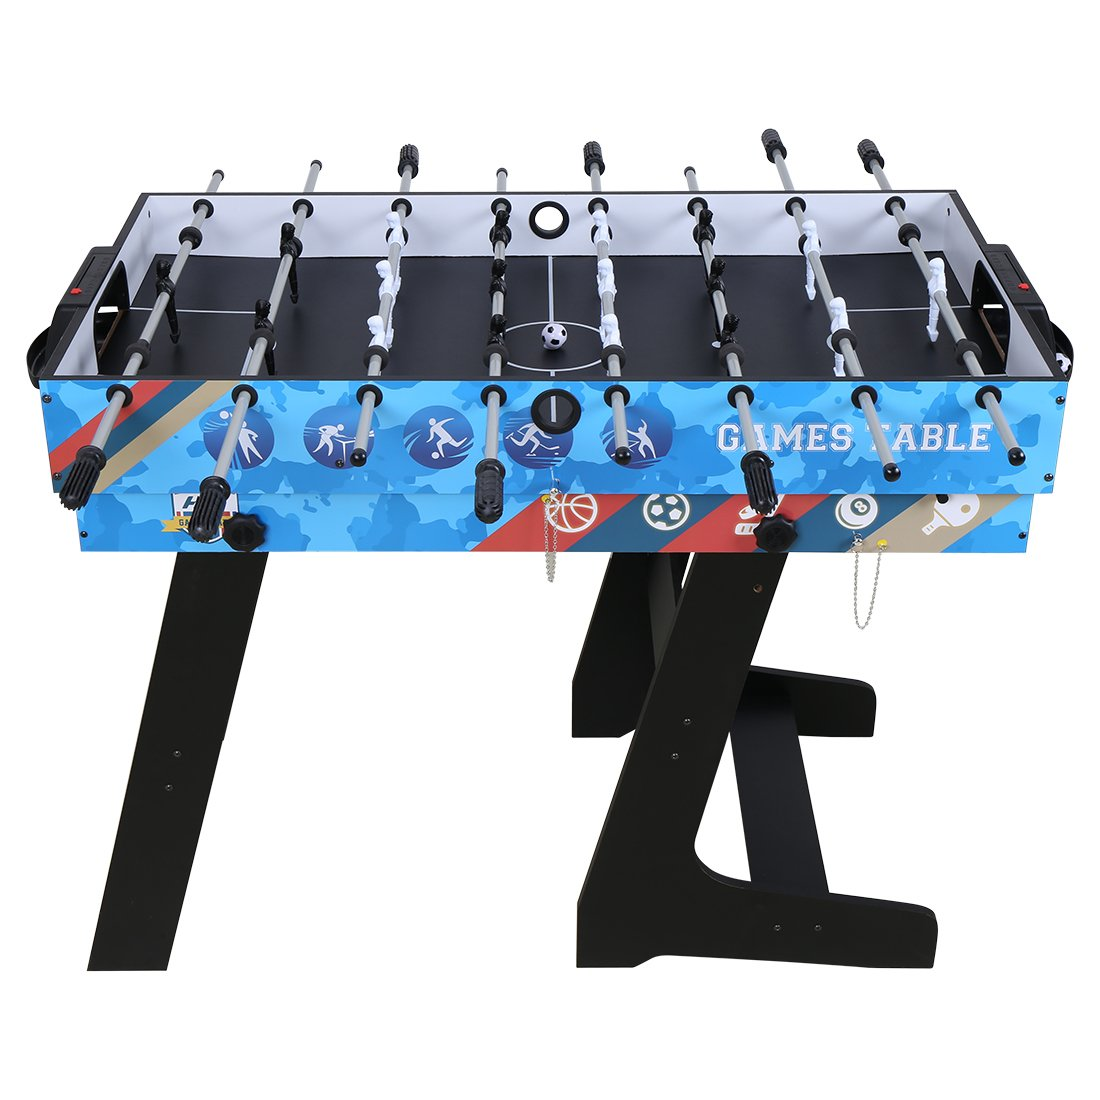 Hysport Multi Game Table 5 in 1 Folding Combo Game Table with Foosball,Slide Hockey,Table Tennis,Billiard,Finger Shoot Basketball by Hysport